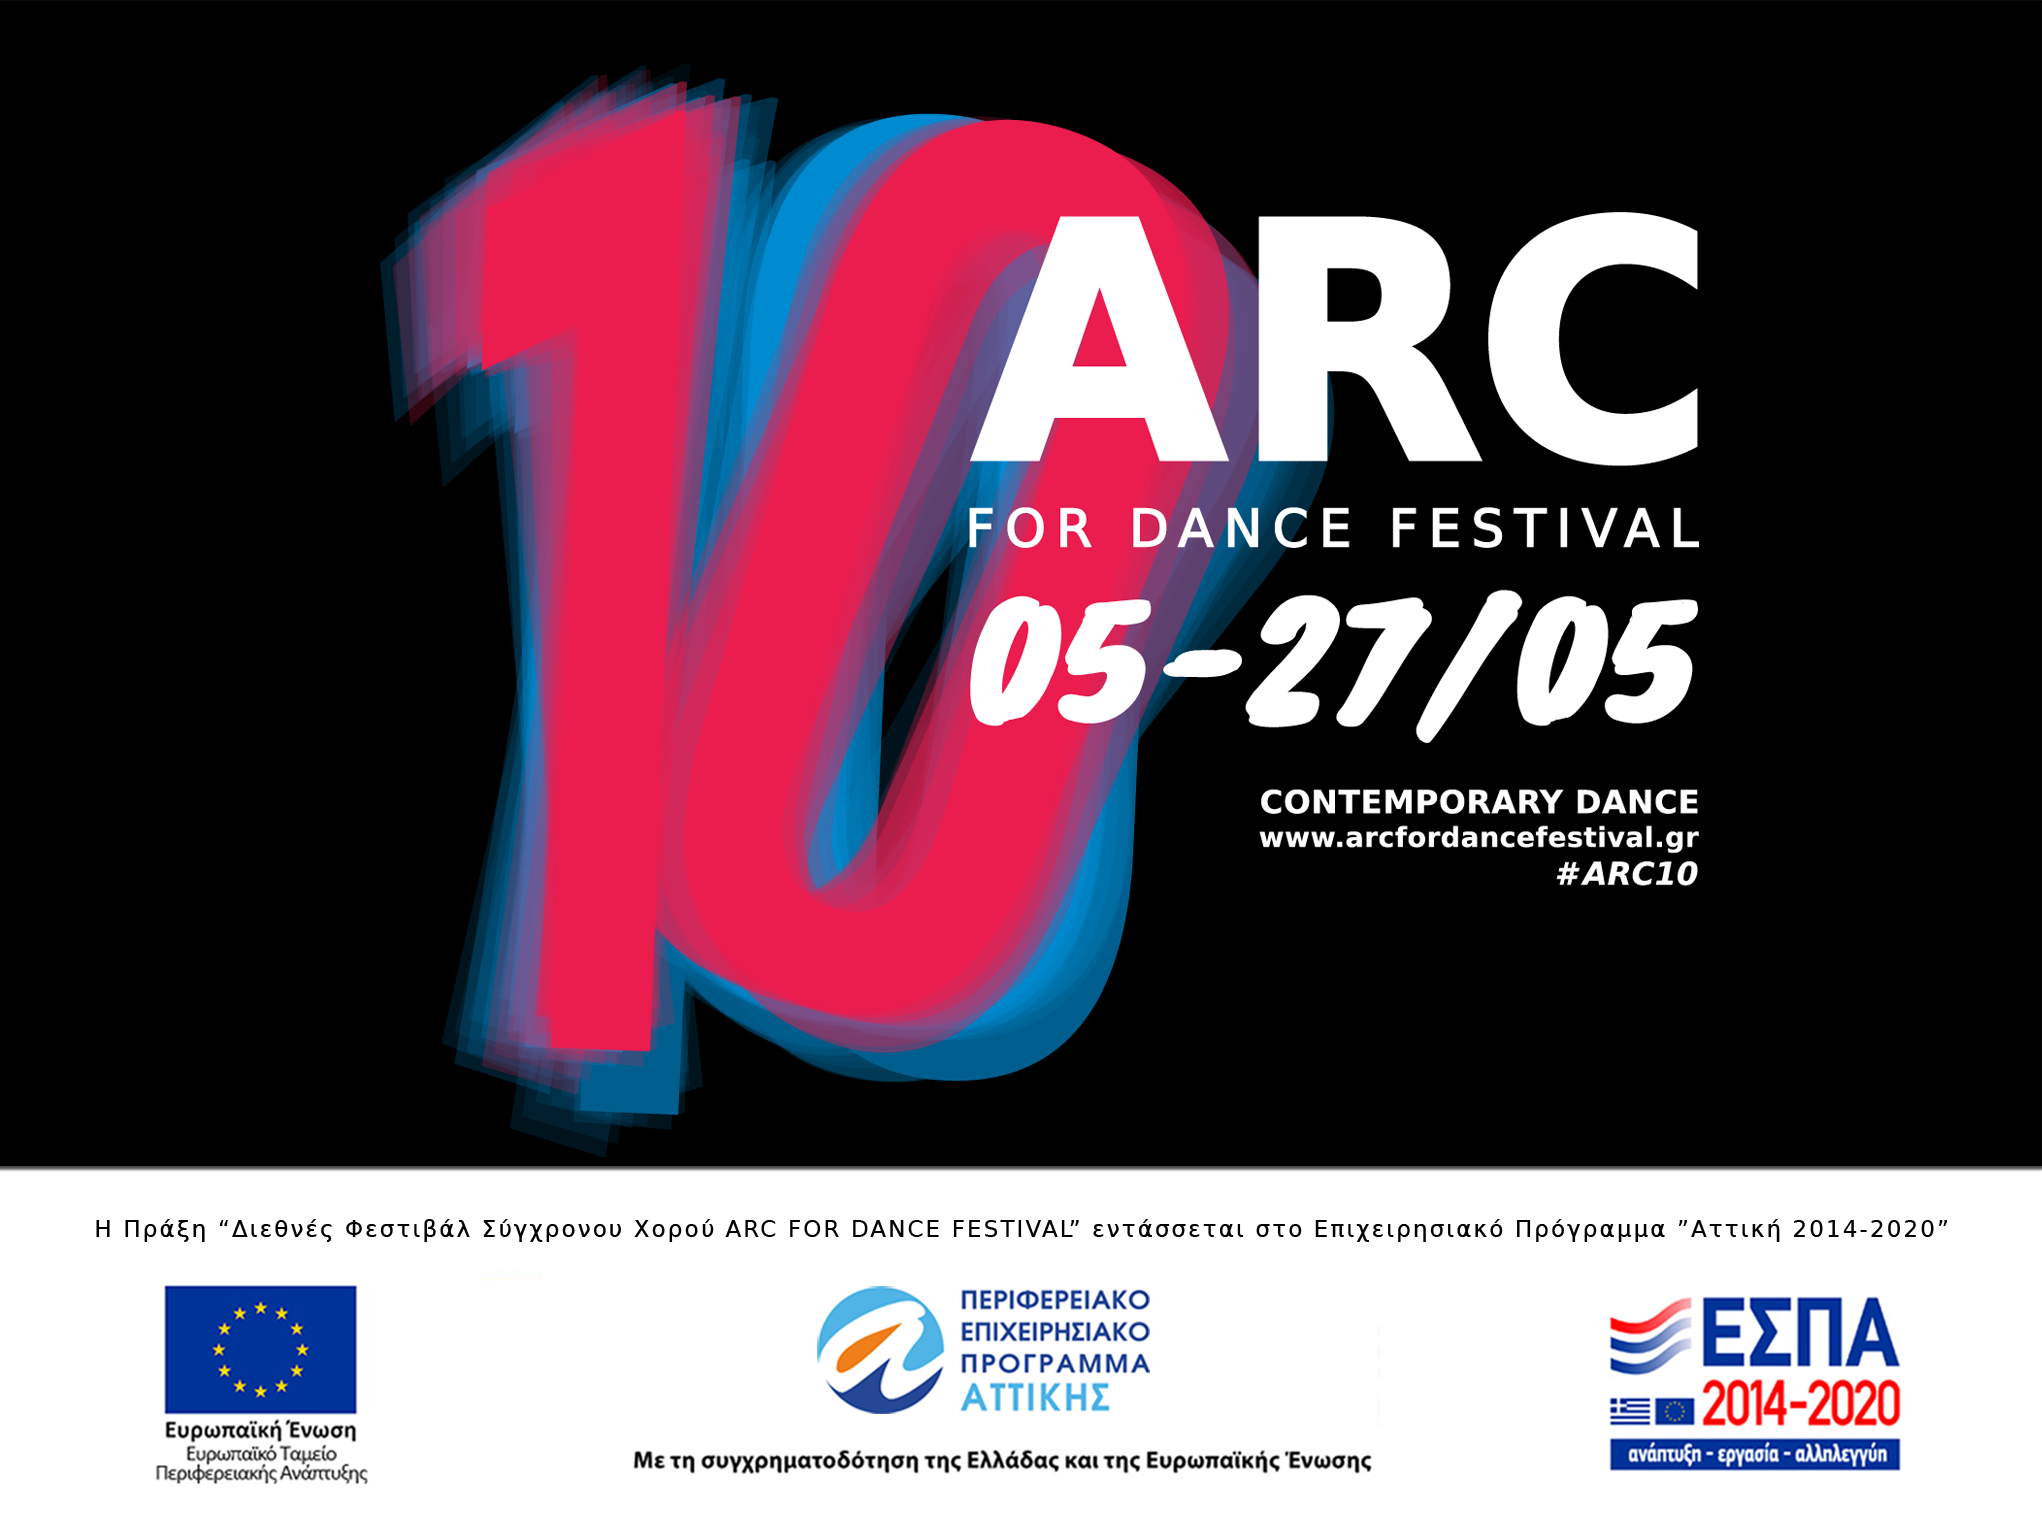 PREMIERE: May 26, 2018 | ARC FOR DANCE FESTIVAL 10